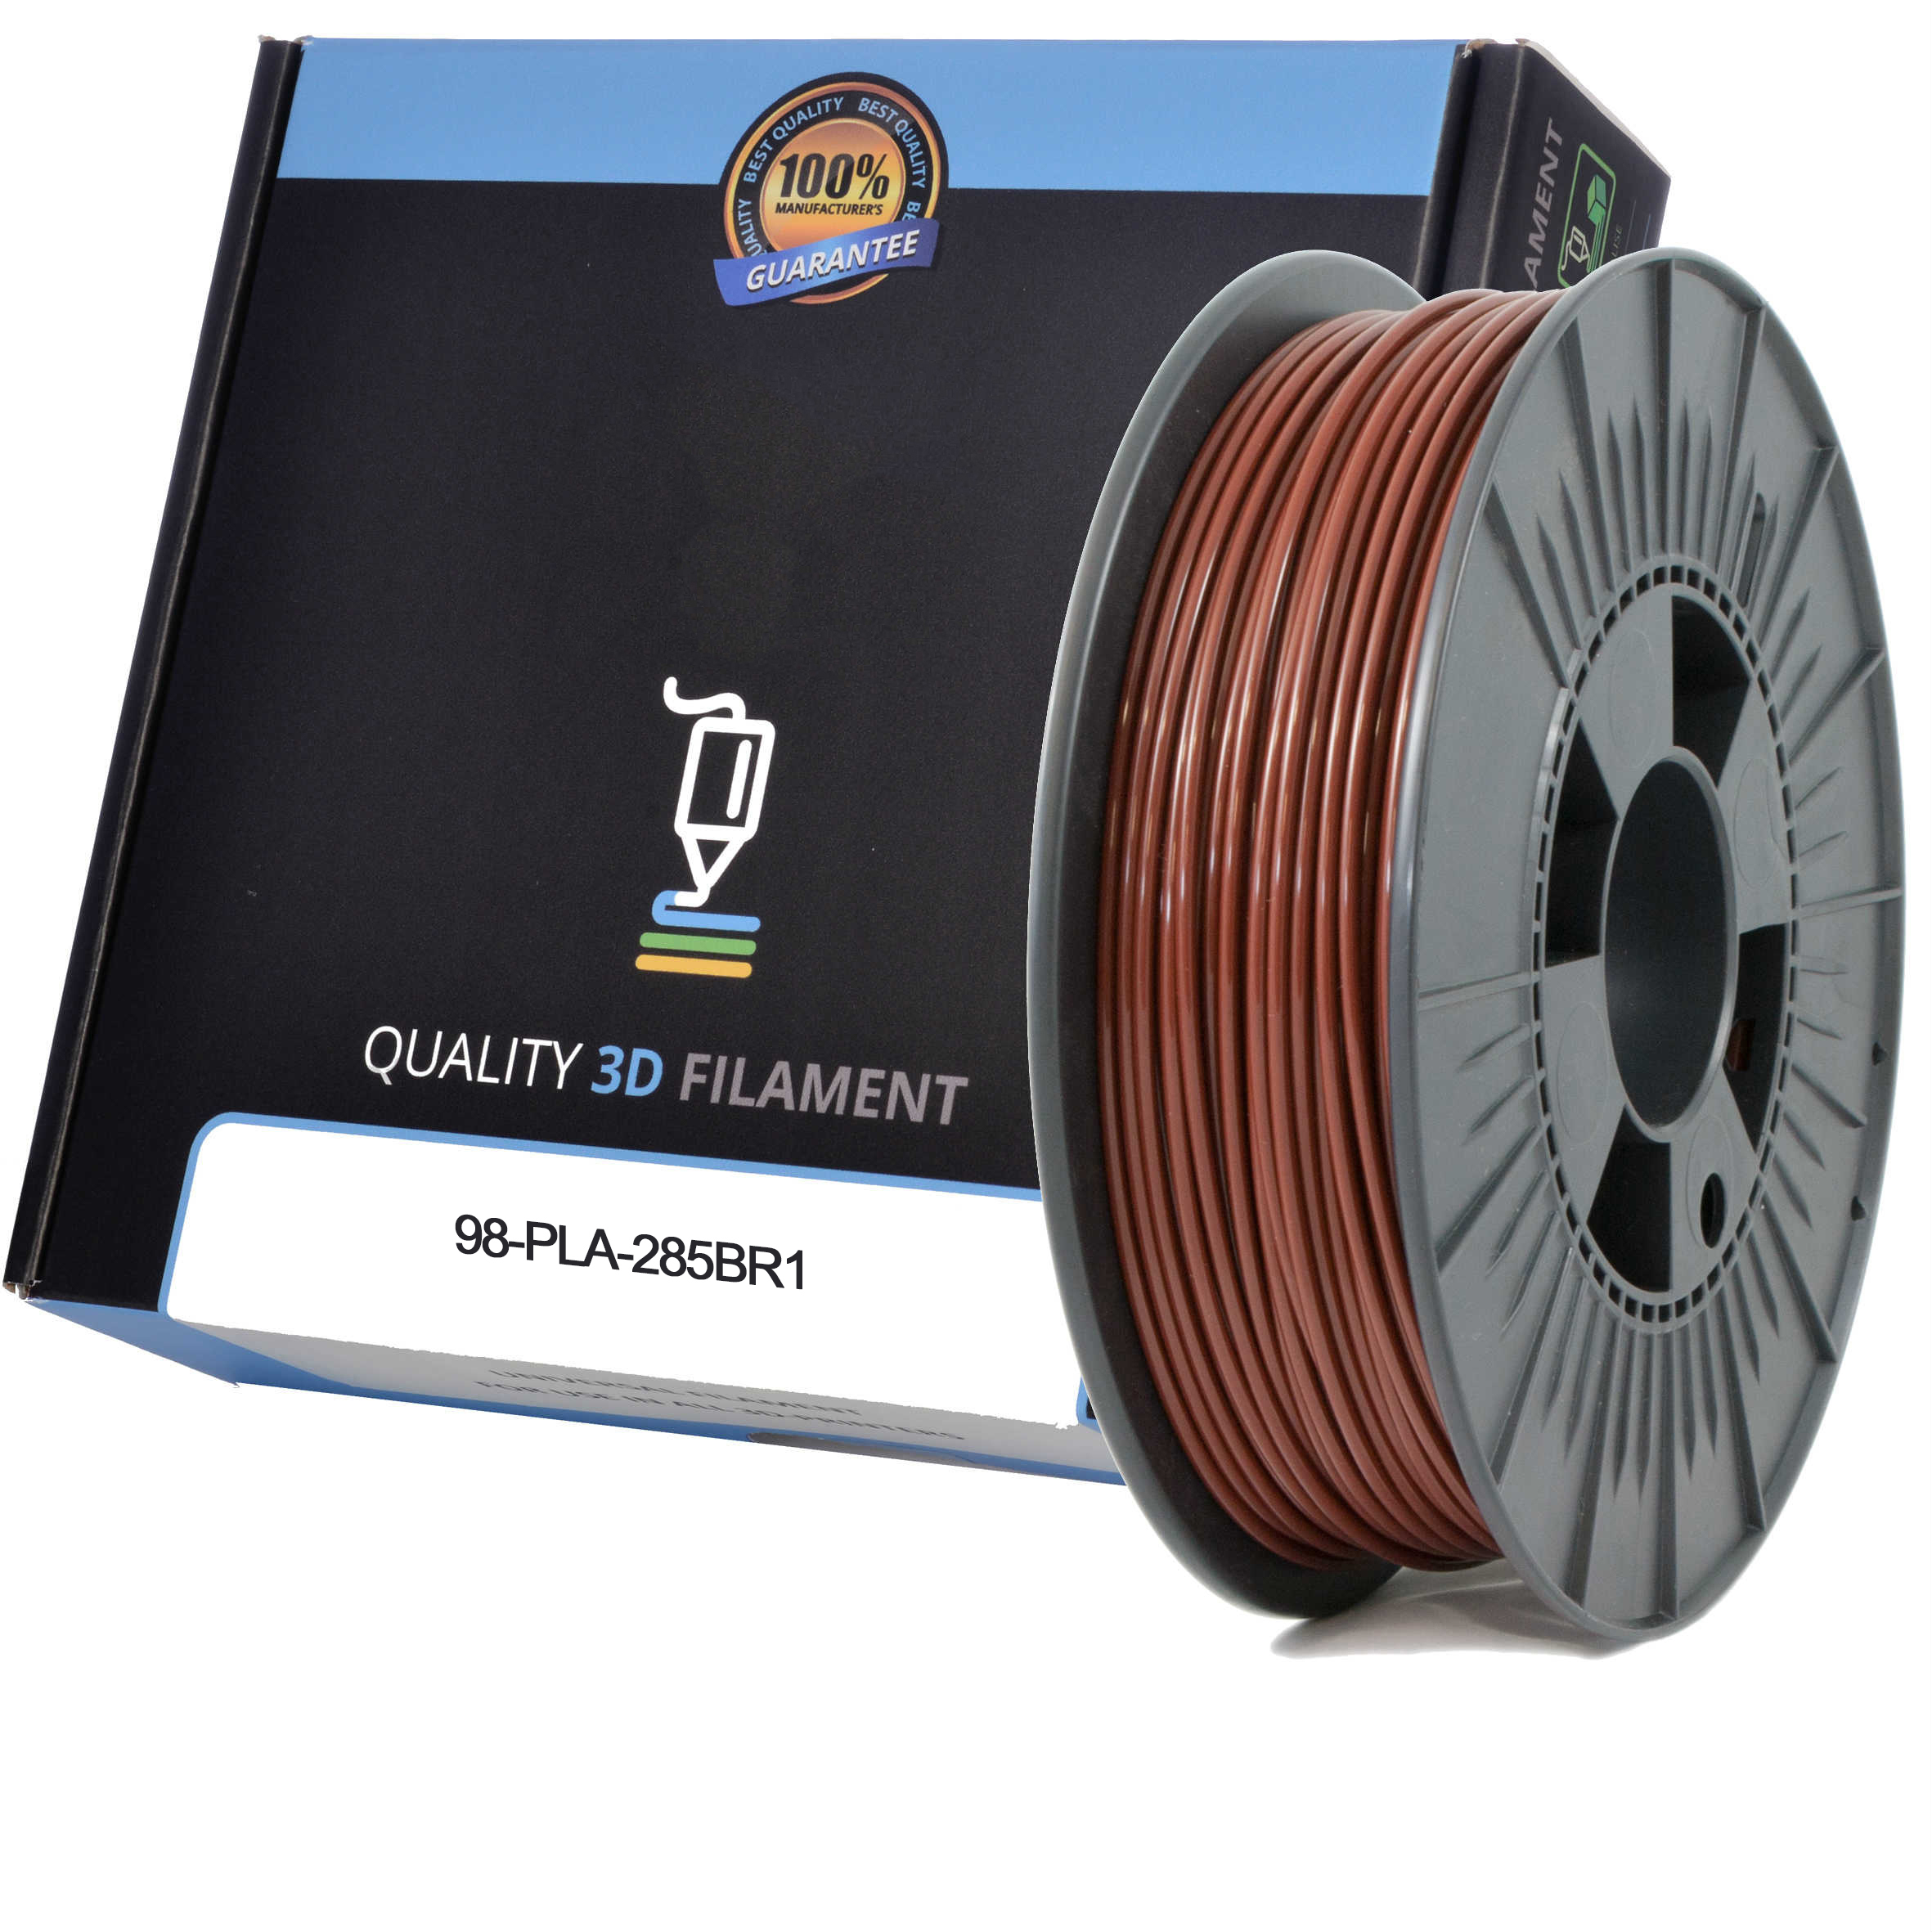 Premium Compatible PLA 2.85mm Brown 0.5kg 3D Filament (98-PLA-285BR1)